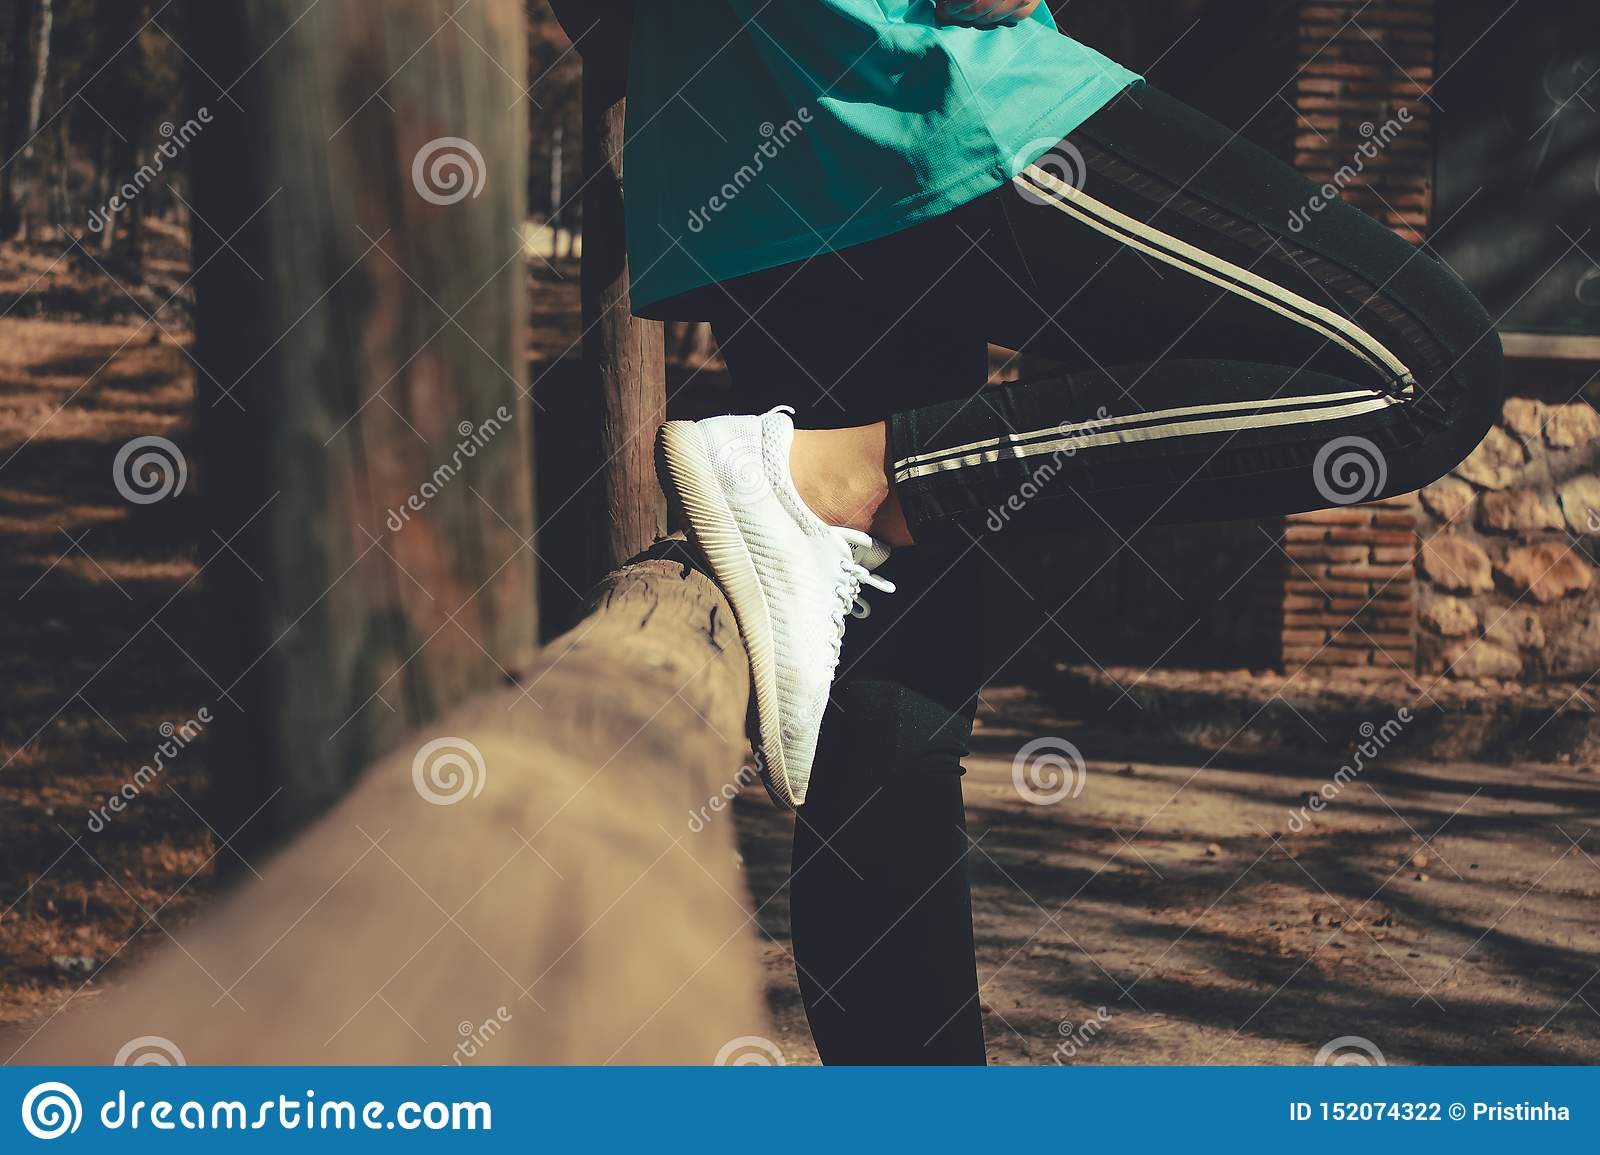 Horizontal capture of a woman resting in a wooden fence wearing sport clothes